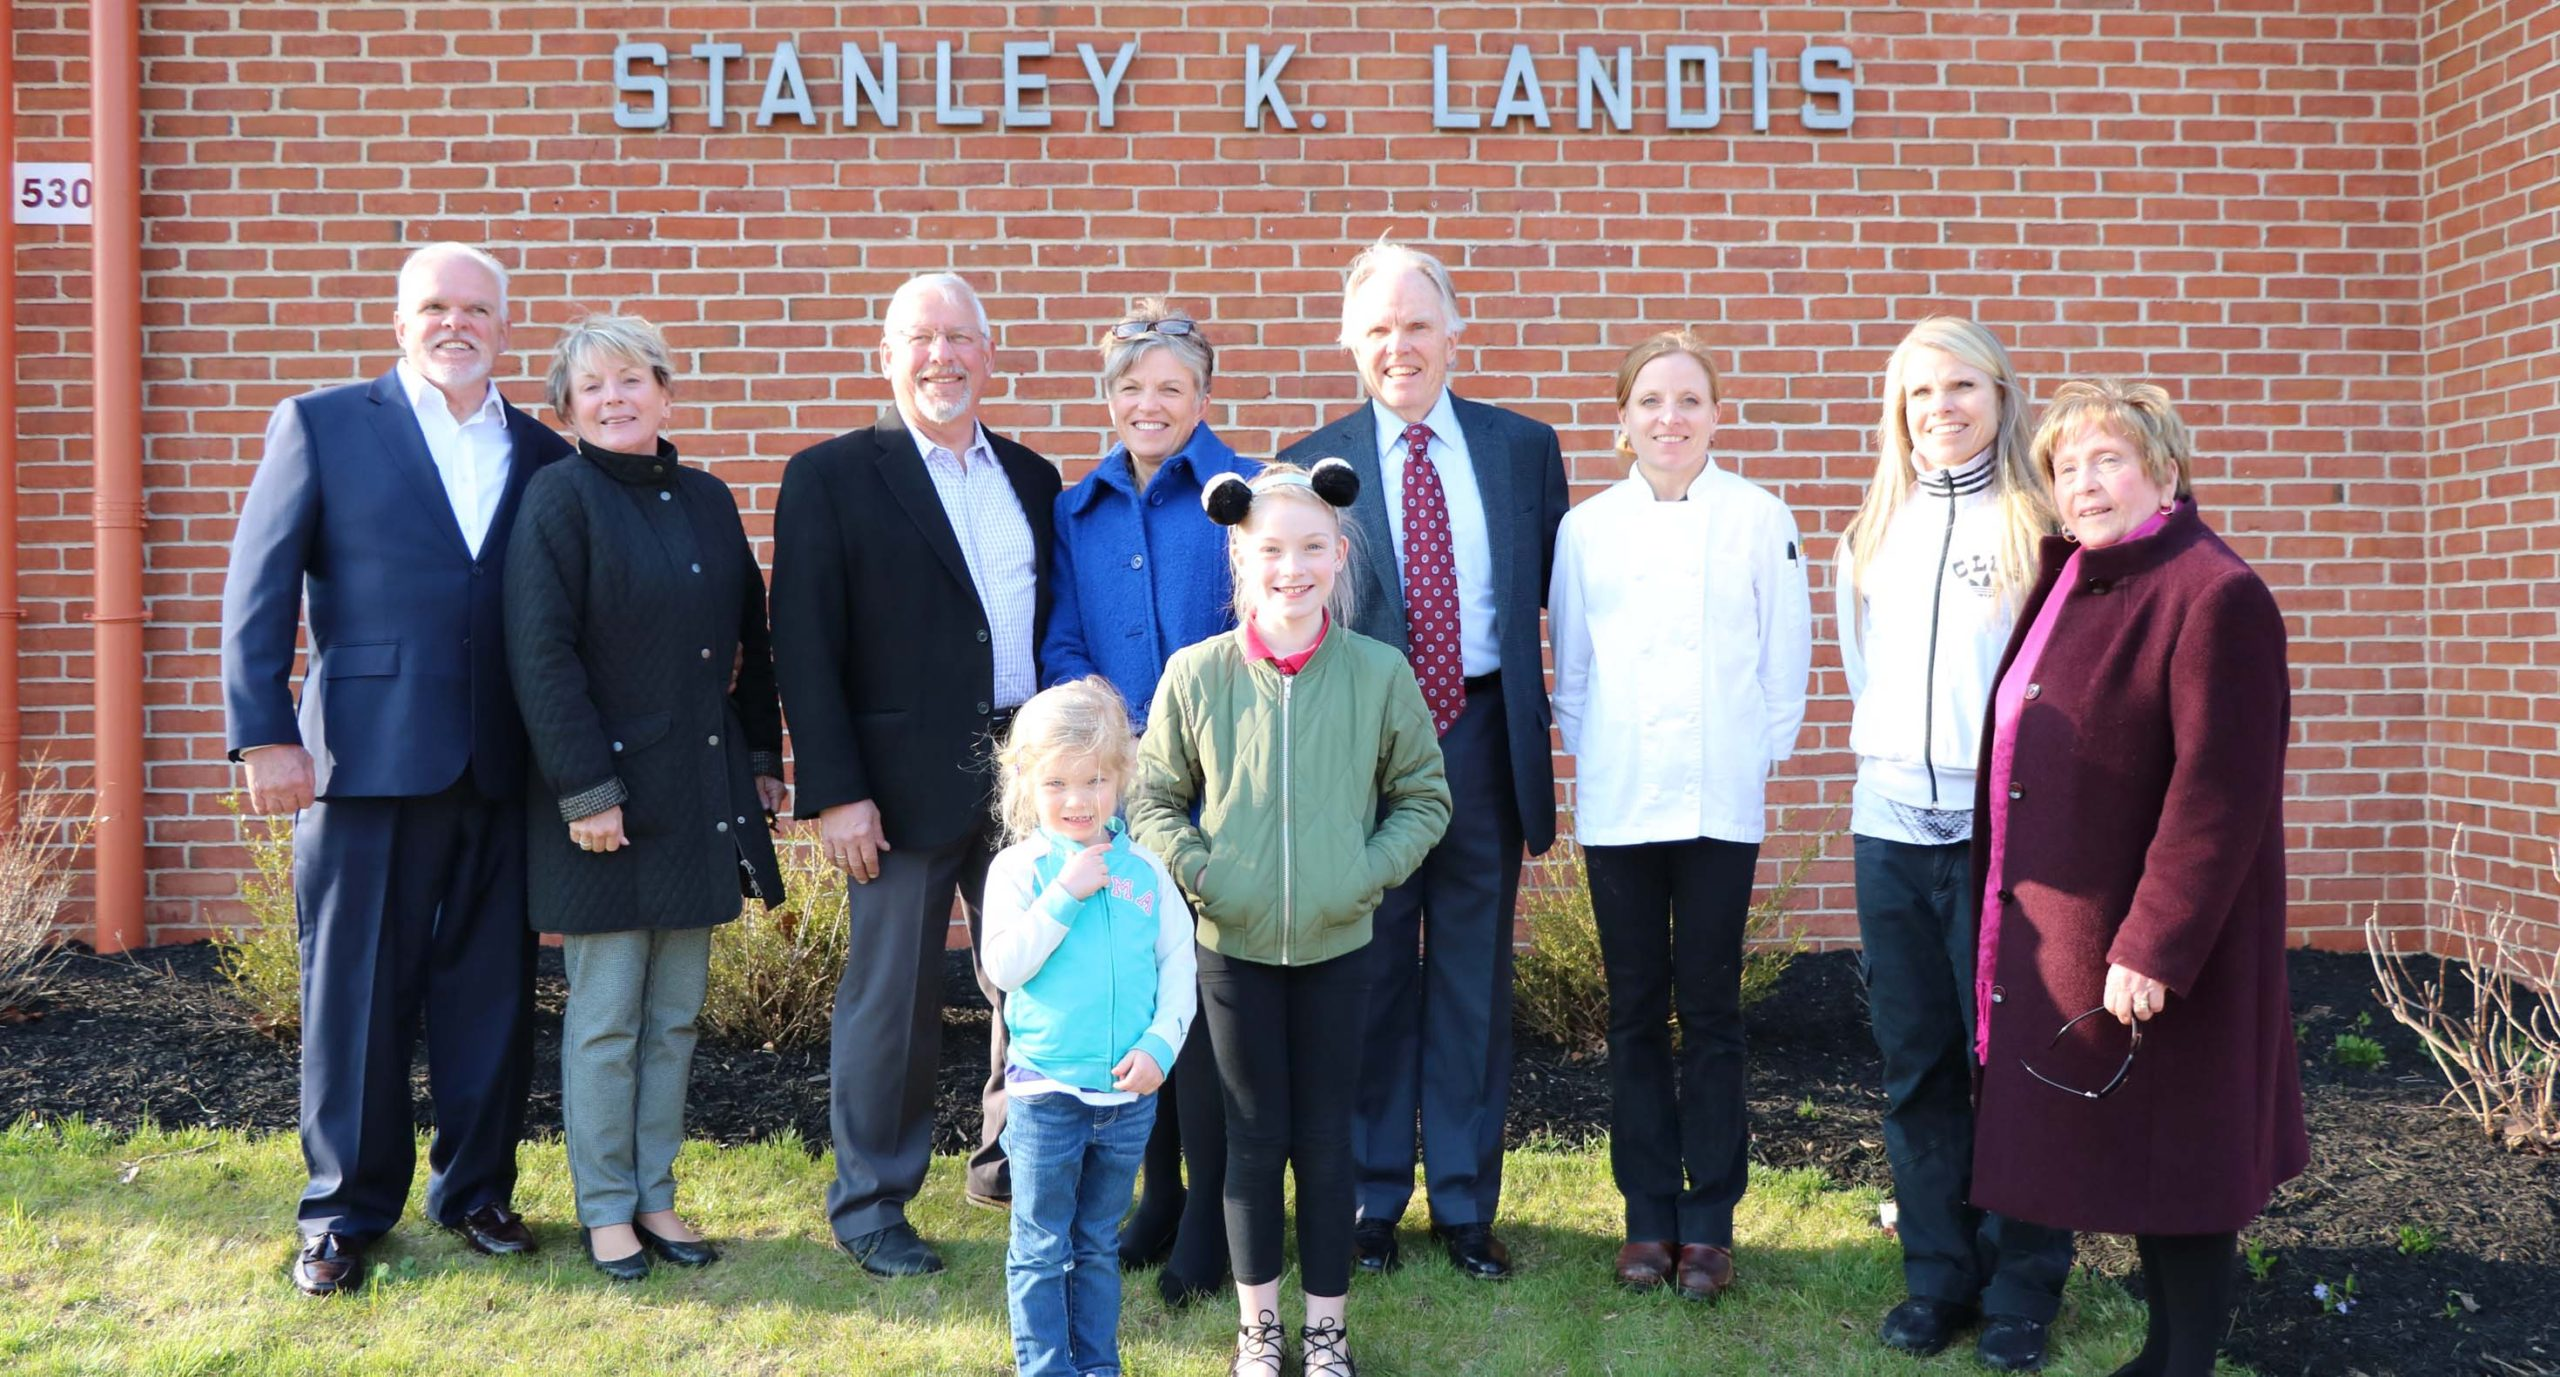 Legacy, Partnership Celebrated at Rededication Ceremony of CCIU's Stanley K. Landis Building